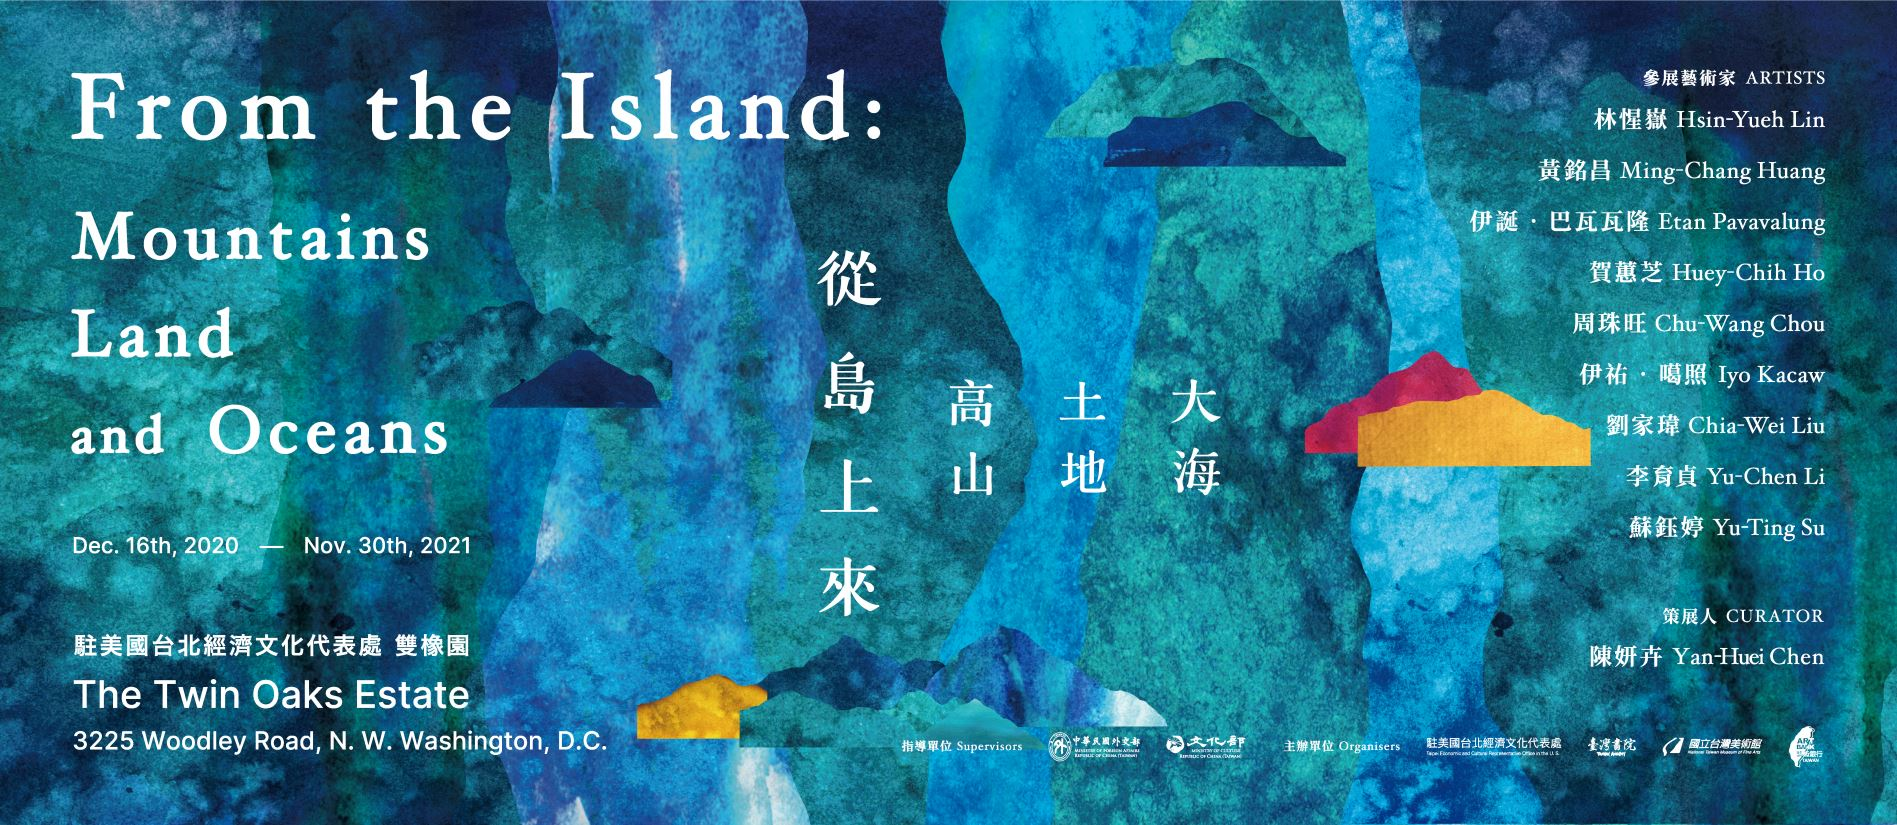 From the Island: Mountains, Land and Oceansopennewwindow